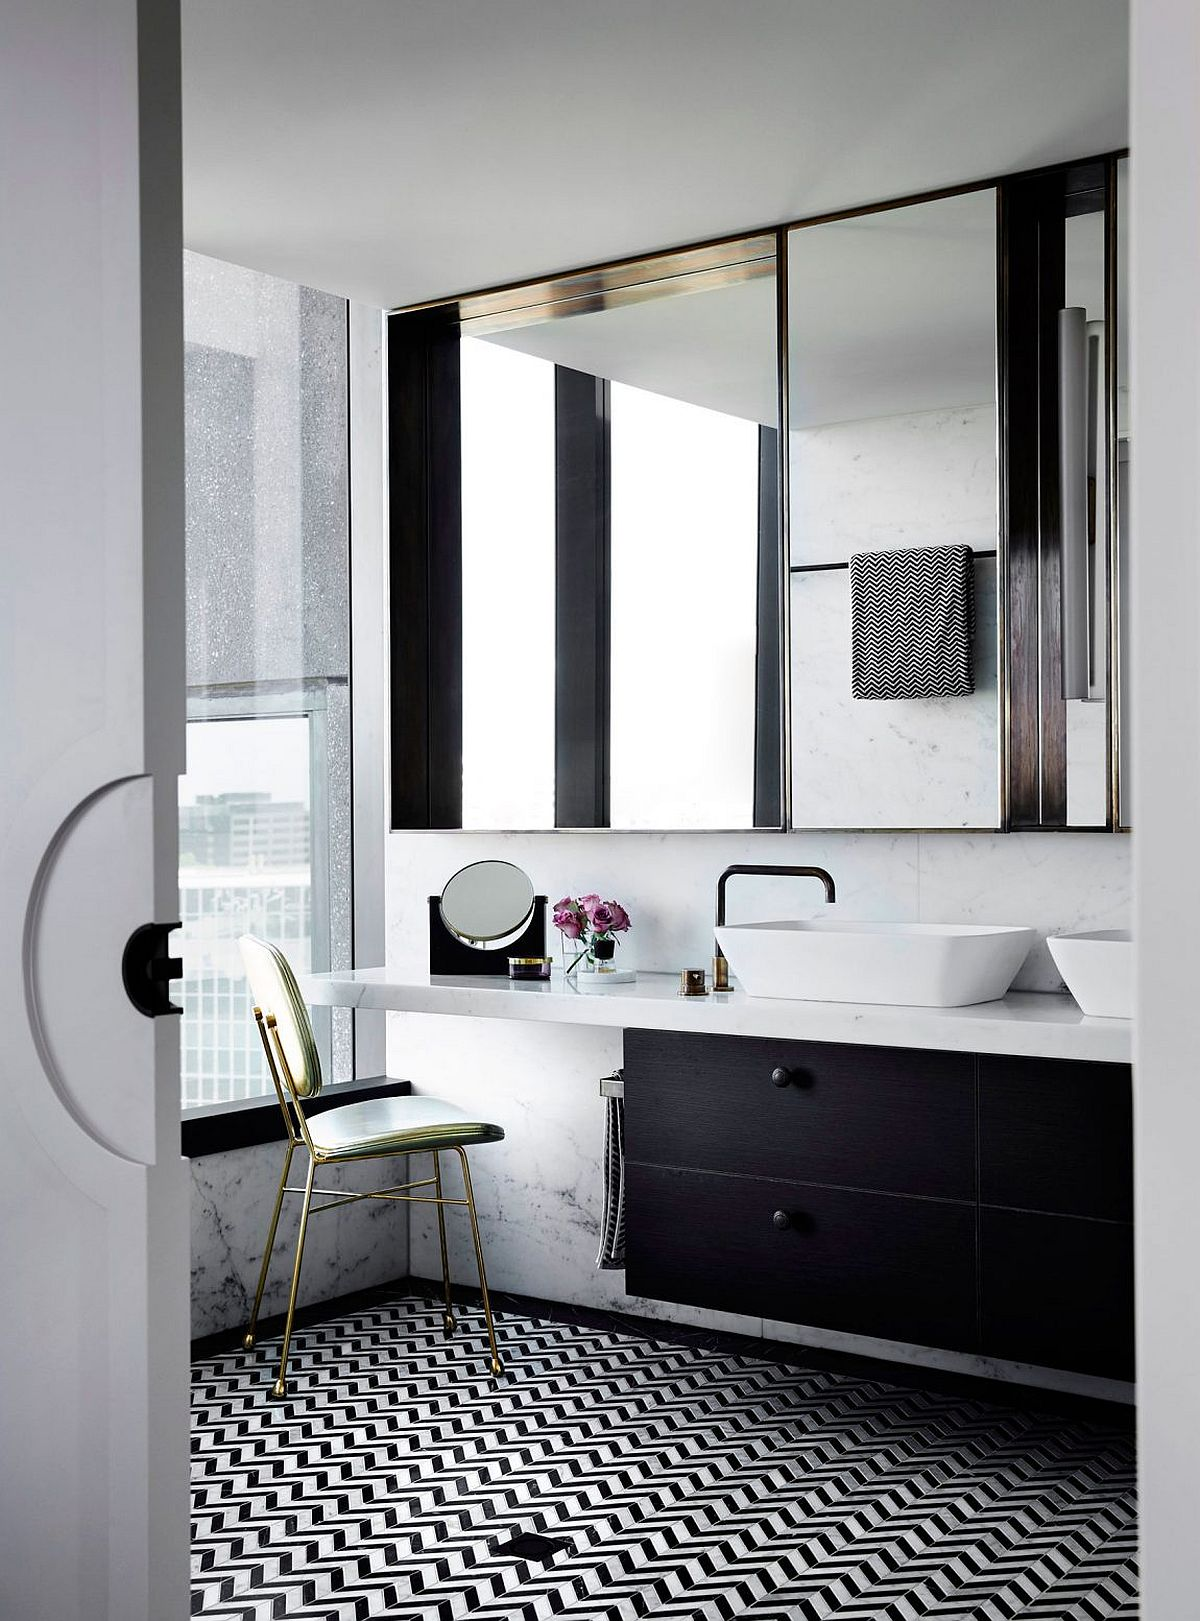 Contemporary bathroom in black and white